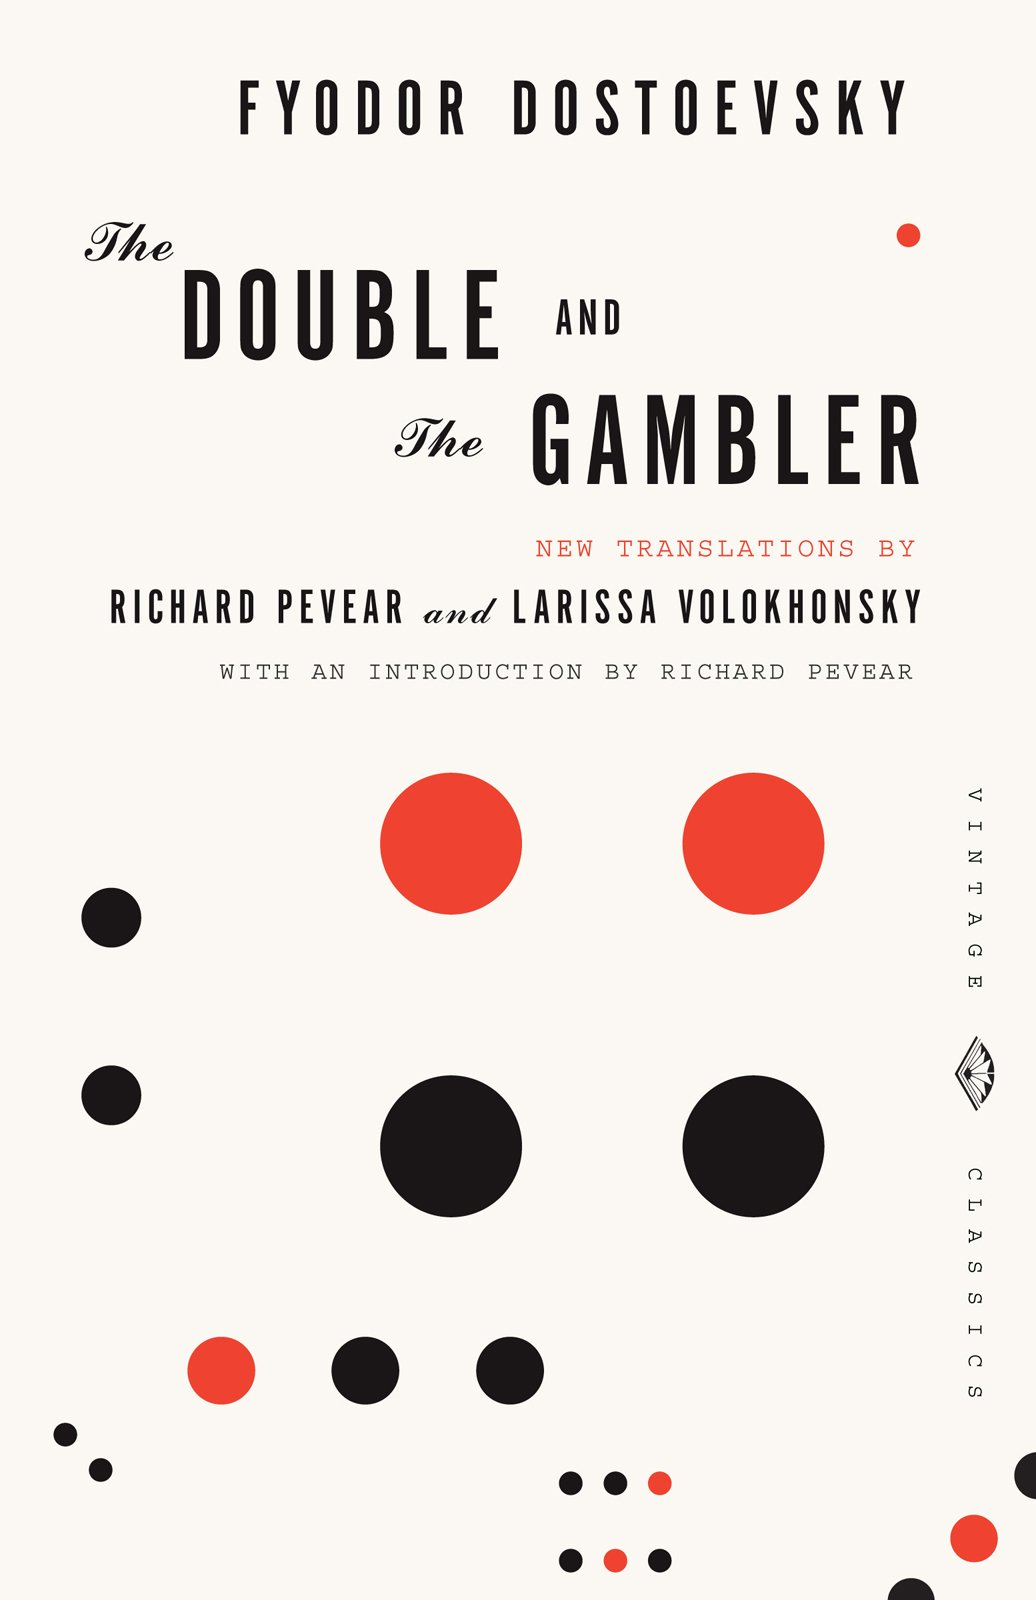 The Double and The Gambler get a bit of color, which adds a new element to the sextet of jackets.  Dostoyevsky, Meet Mendelsund by Aaron Britt